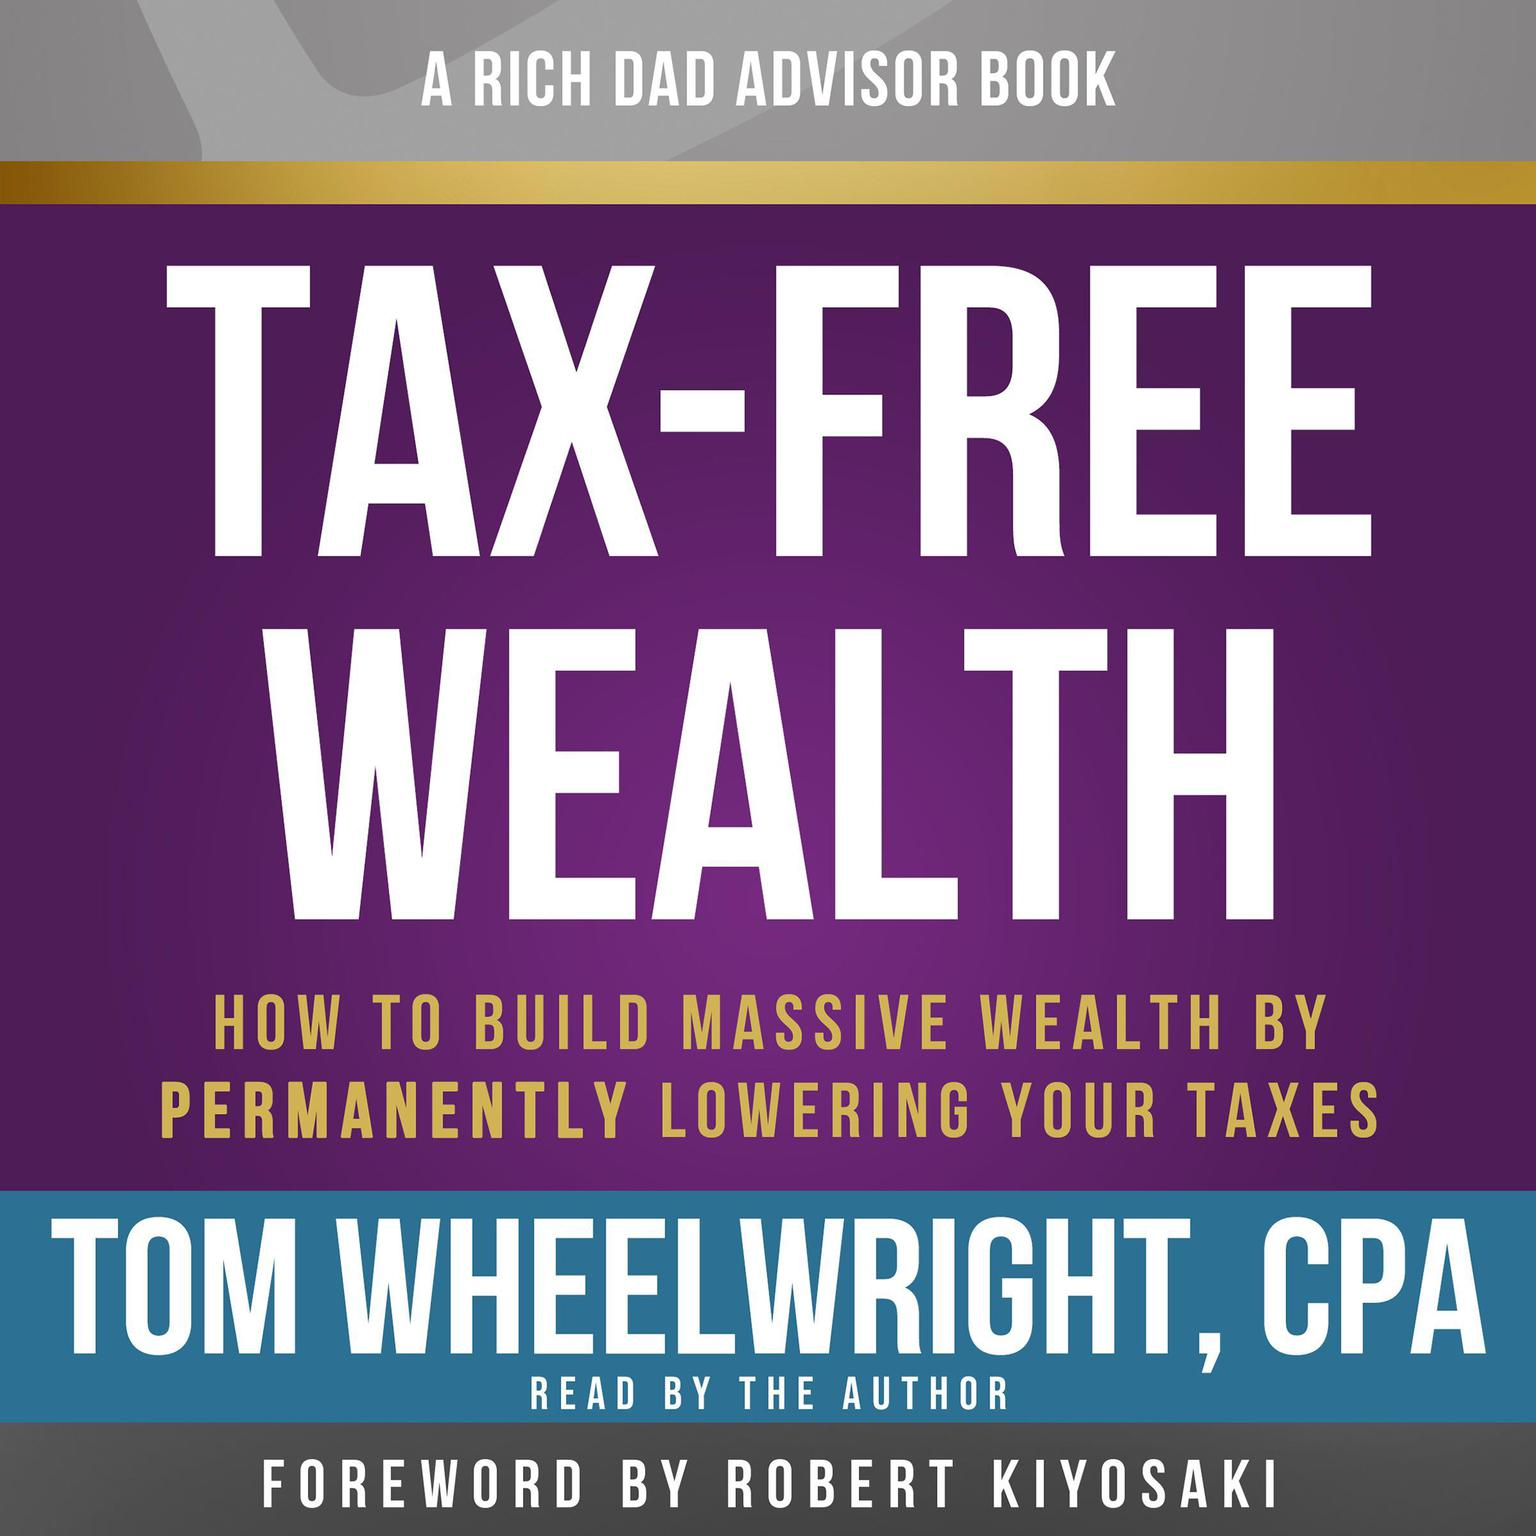 Printable Rich Dad Advisors: Tax-Free Wealth, 2nd Edition: How to Build Massive Wealth by Permanently Lowering Your Taxes Audiobook Cover Art